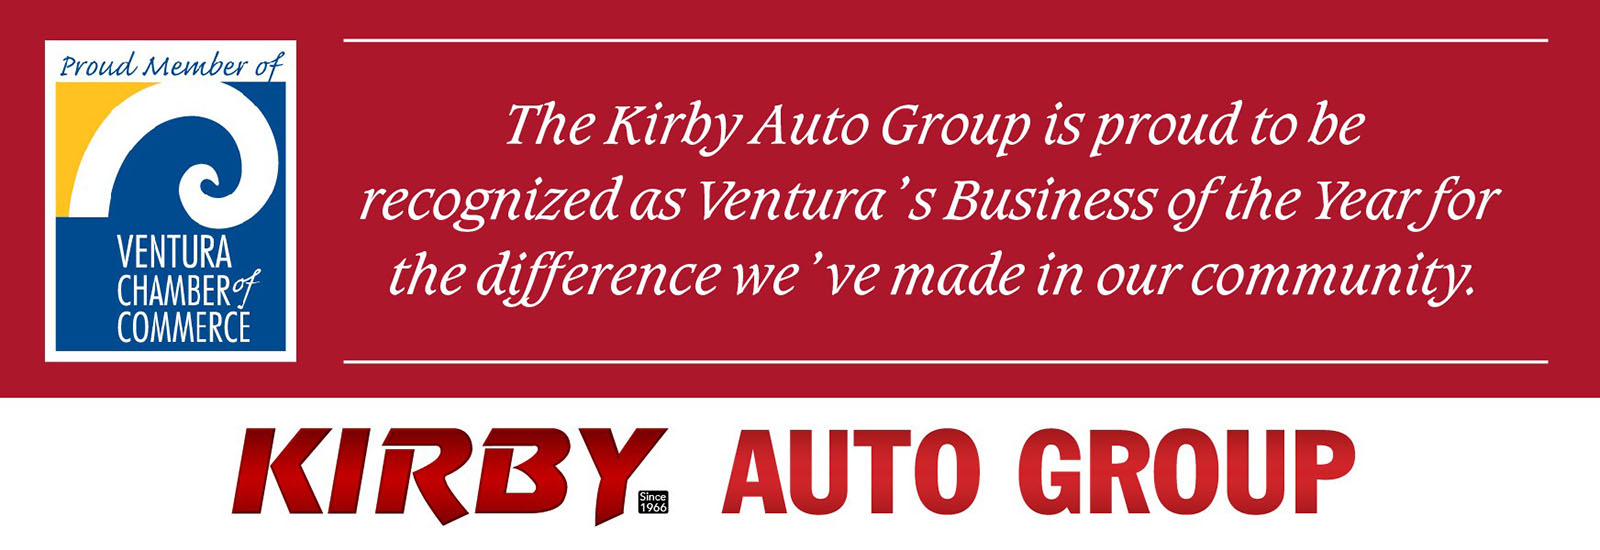 Ventura Chamber of Commerce Business of the Year - Kirby Automotive